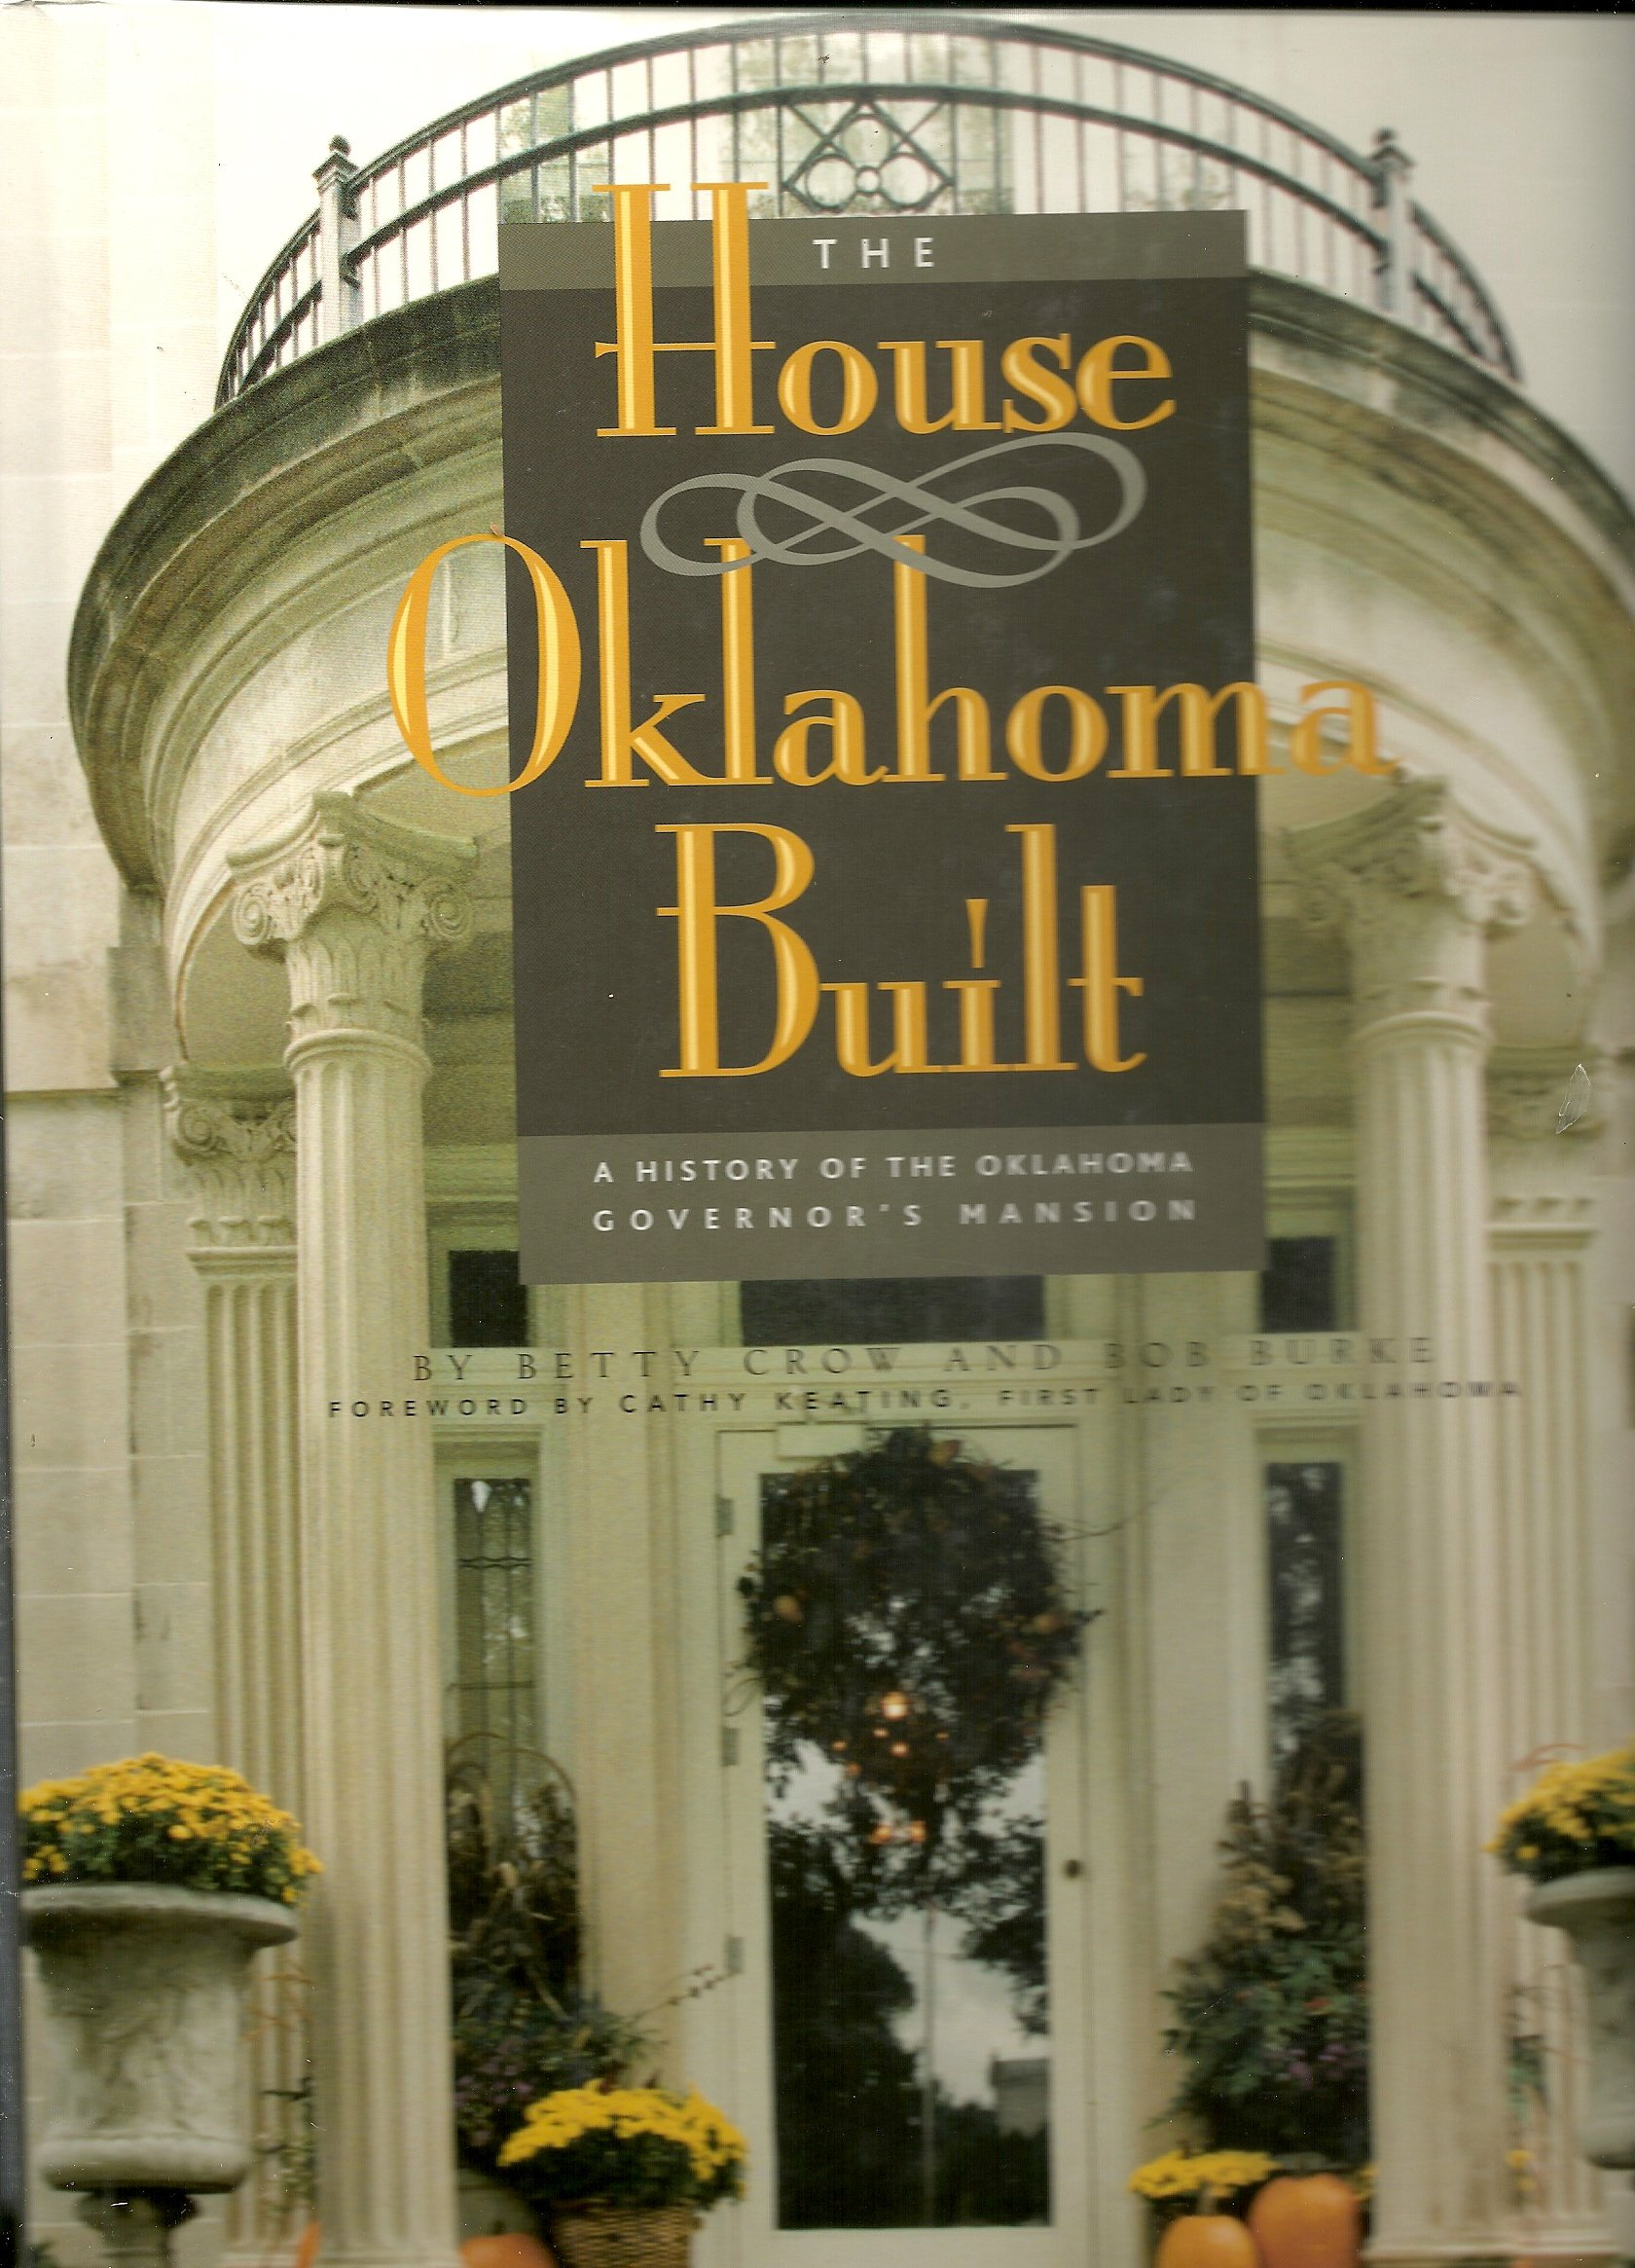 Read Online The house Oklahoma built: A history of the Oklahoma Governor's Mansion pdf